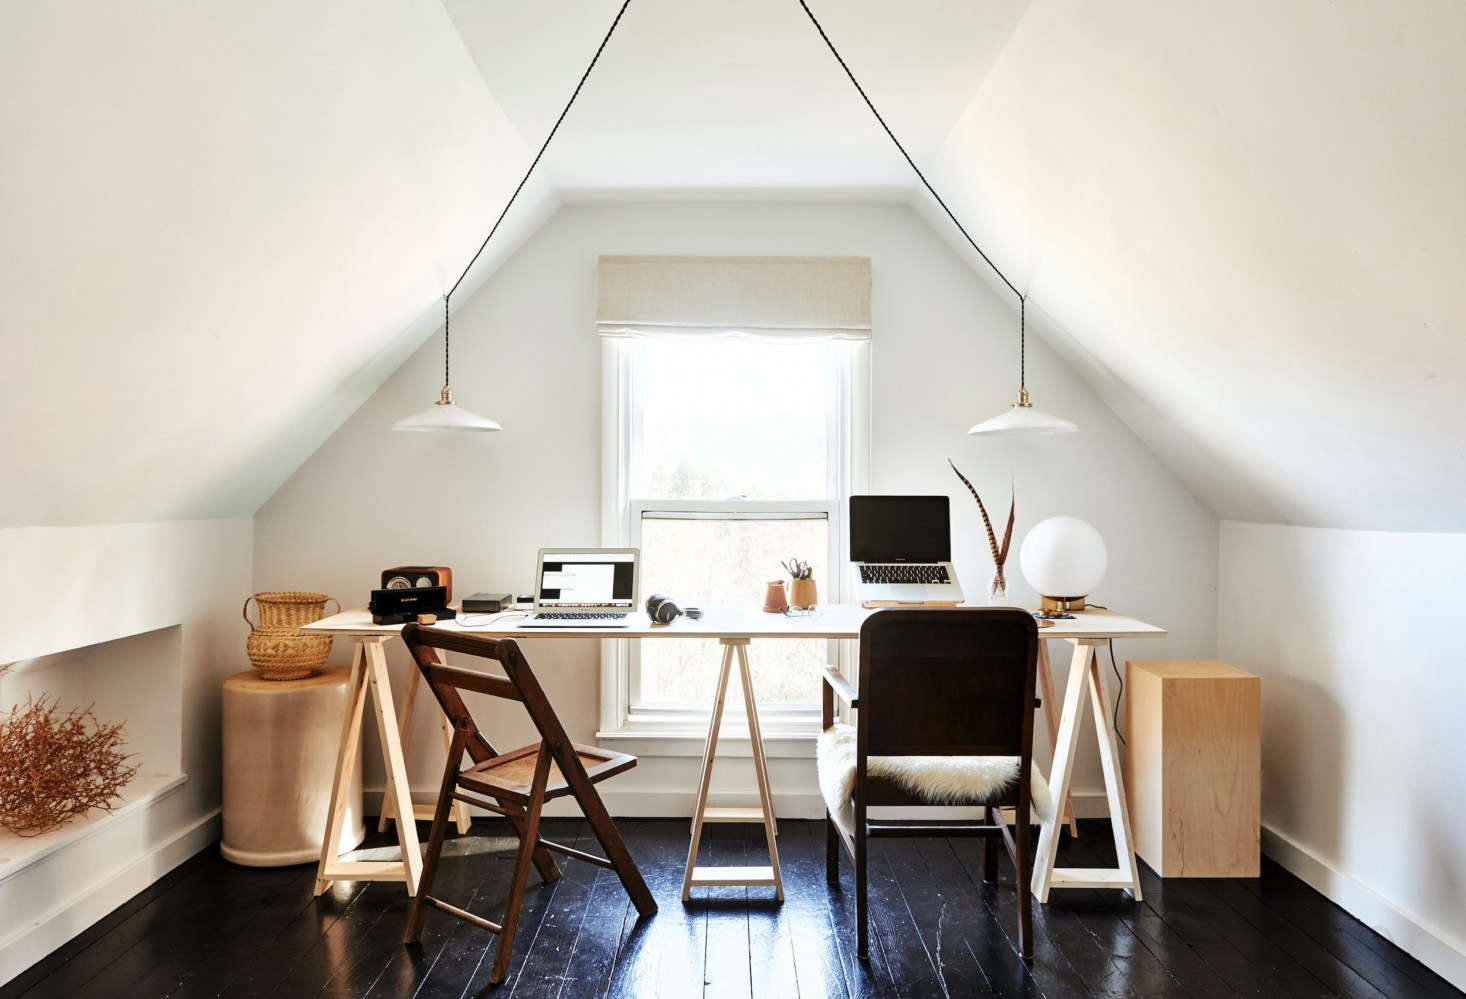 The attic—which formerly had been turned into a guest bedroom—received a very  changeover into a home office, &#8